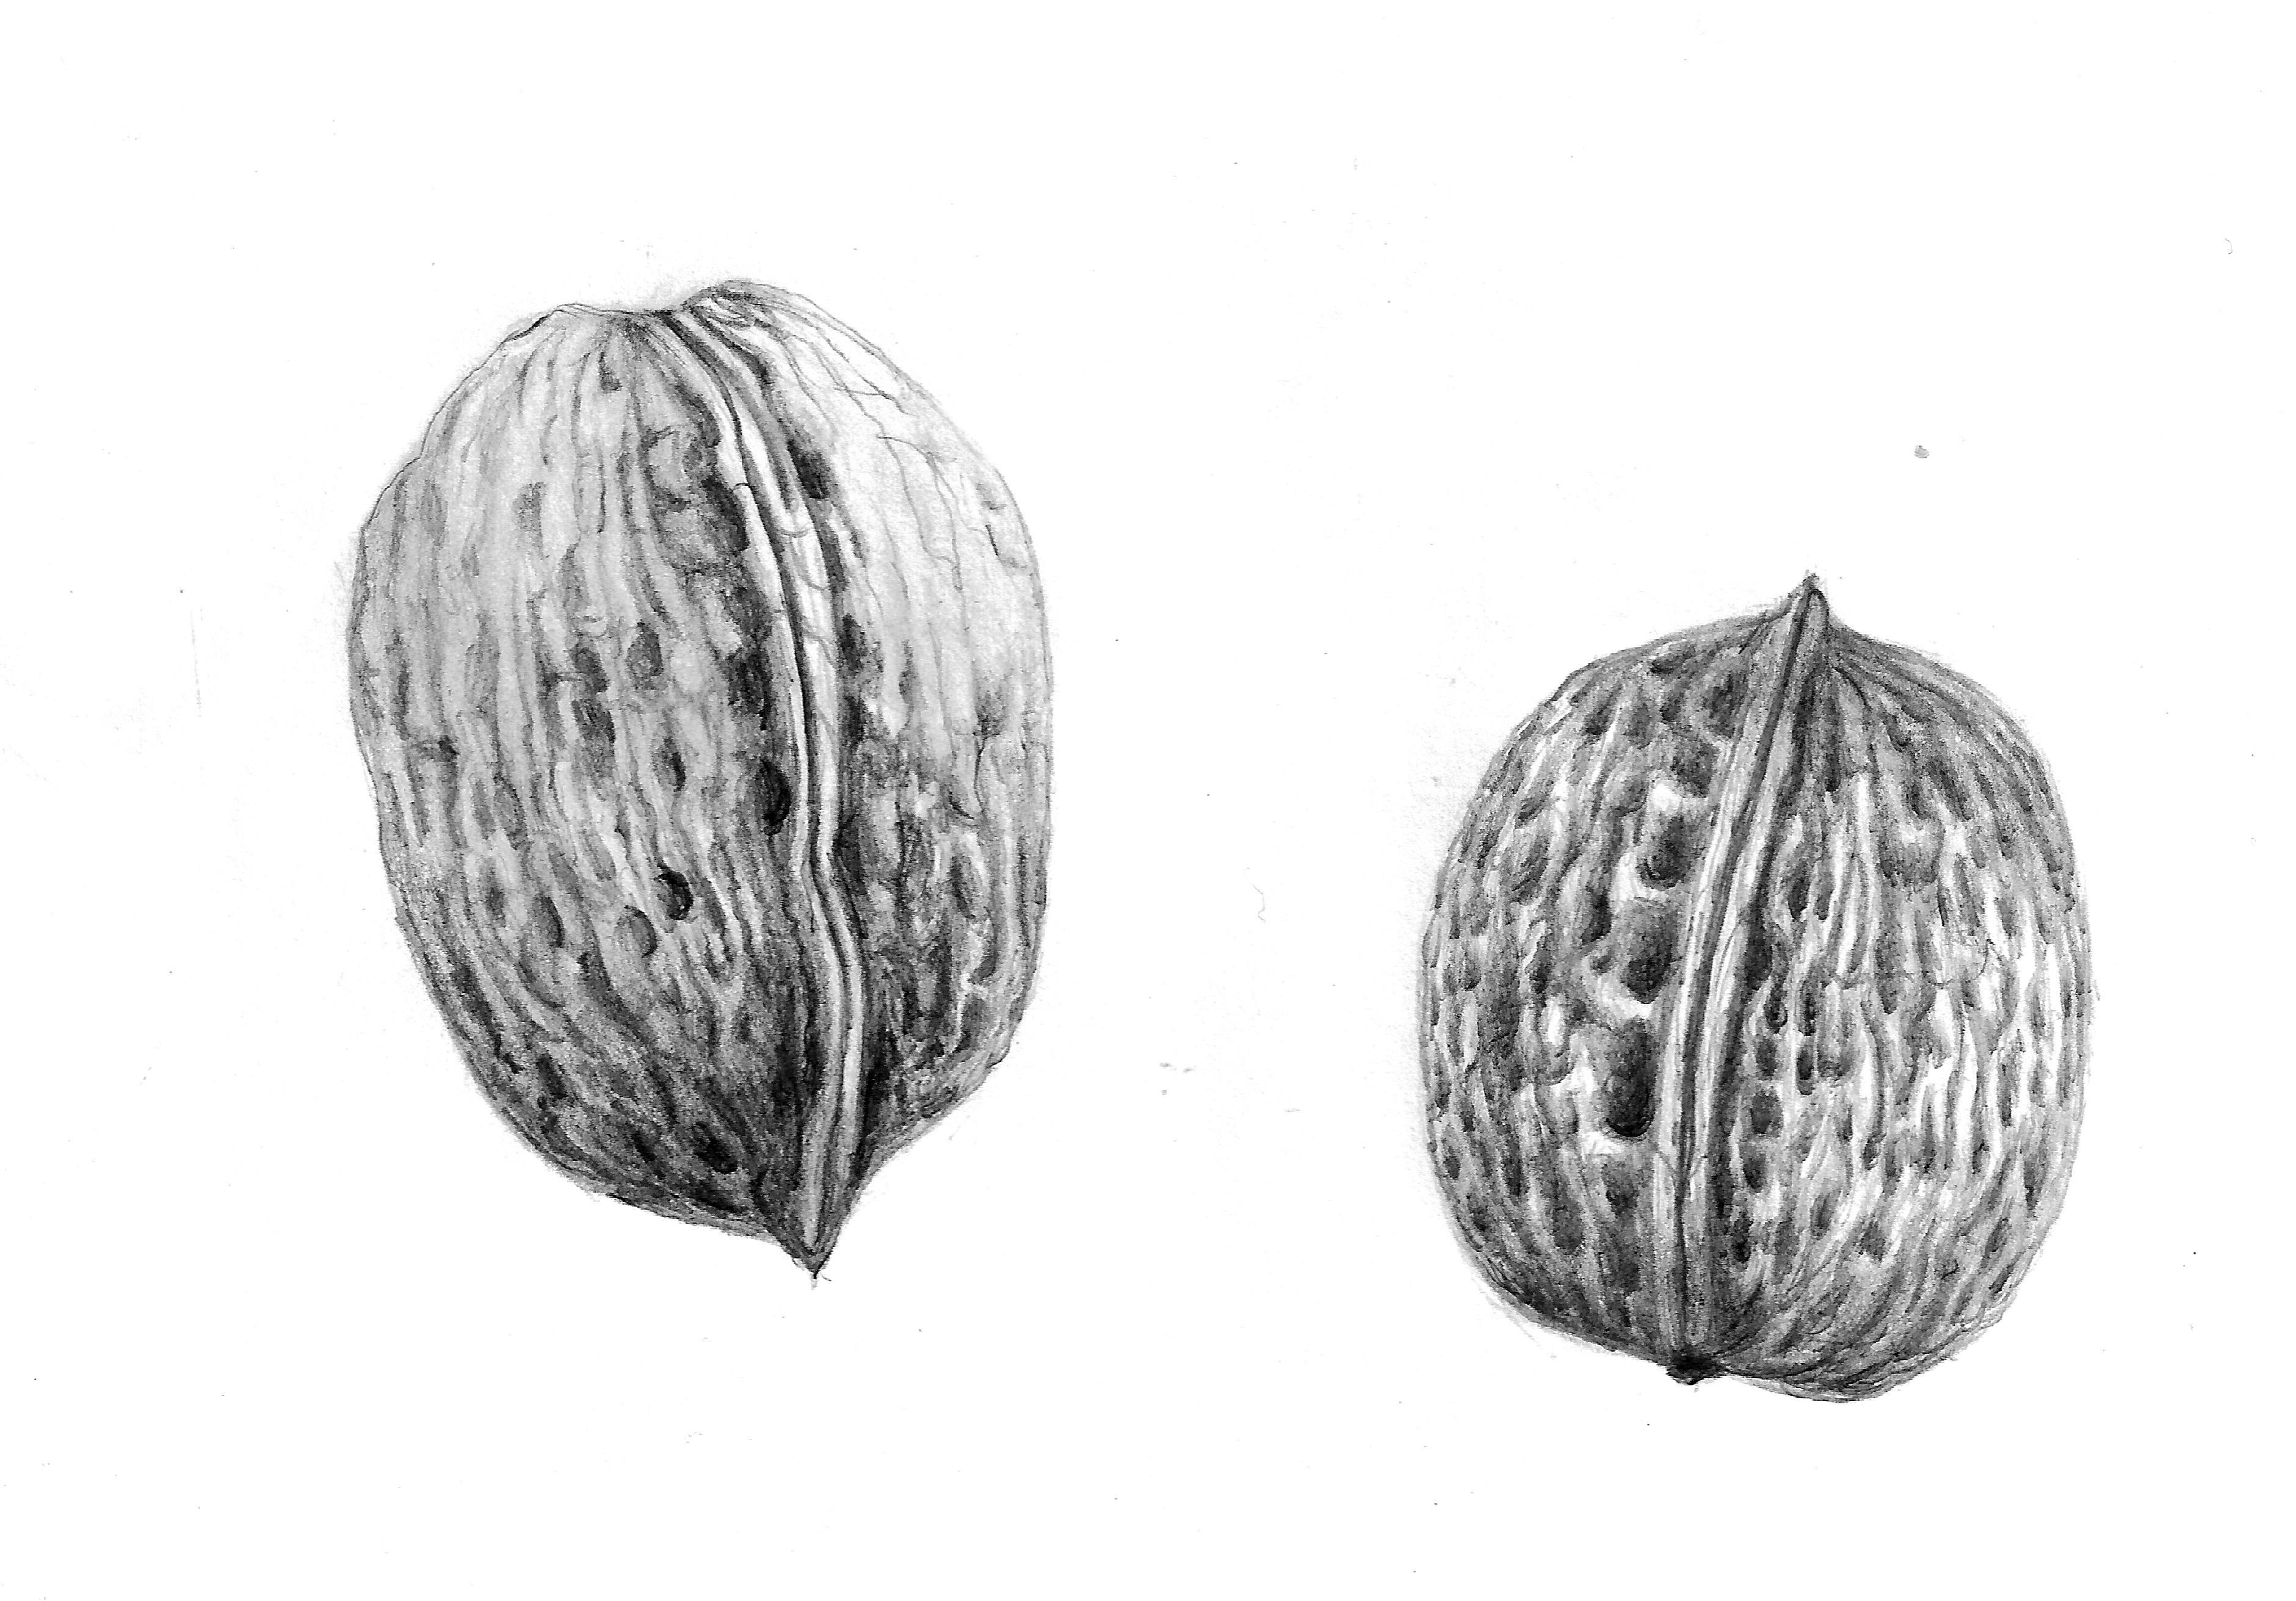 Vegetable drawings